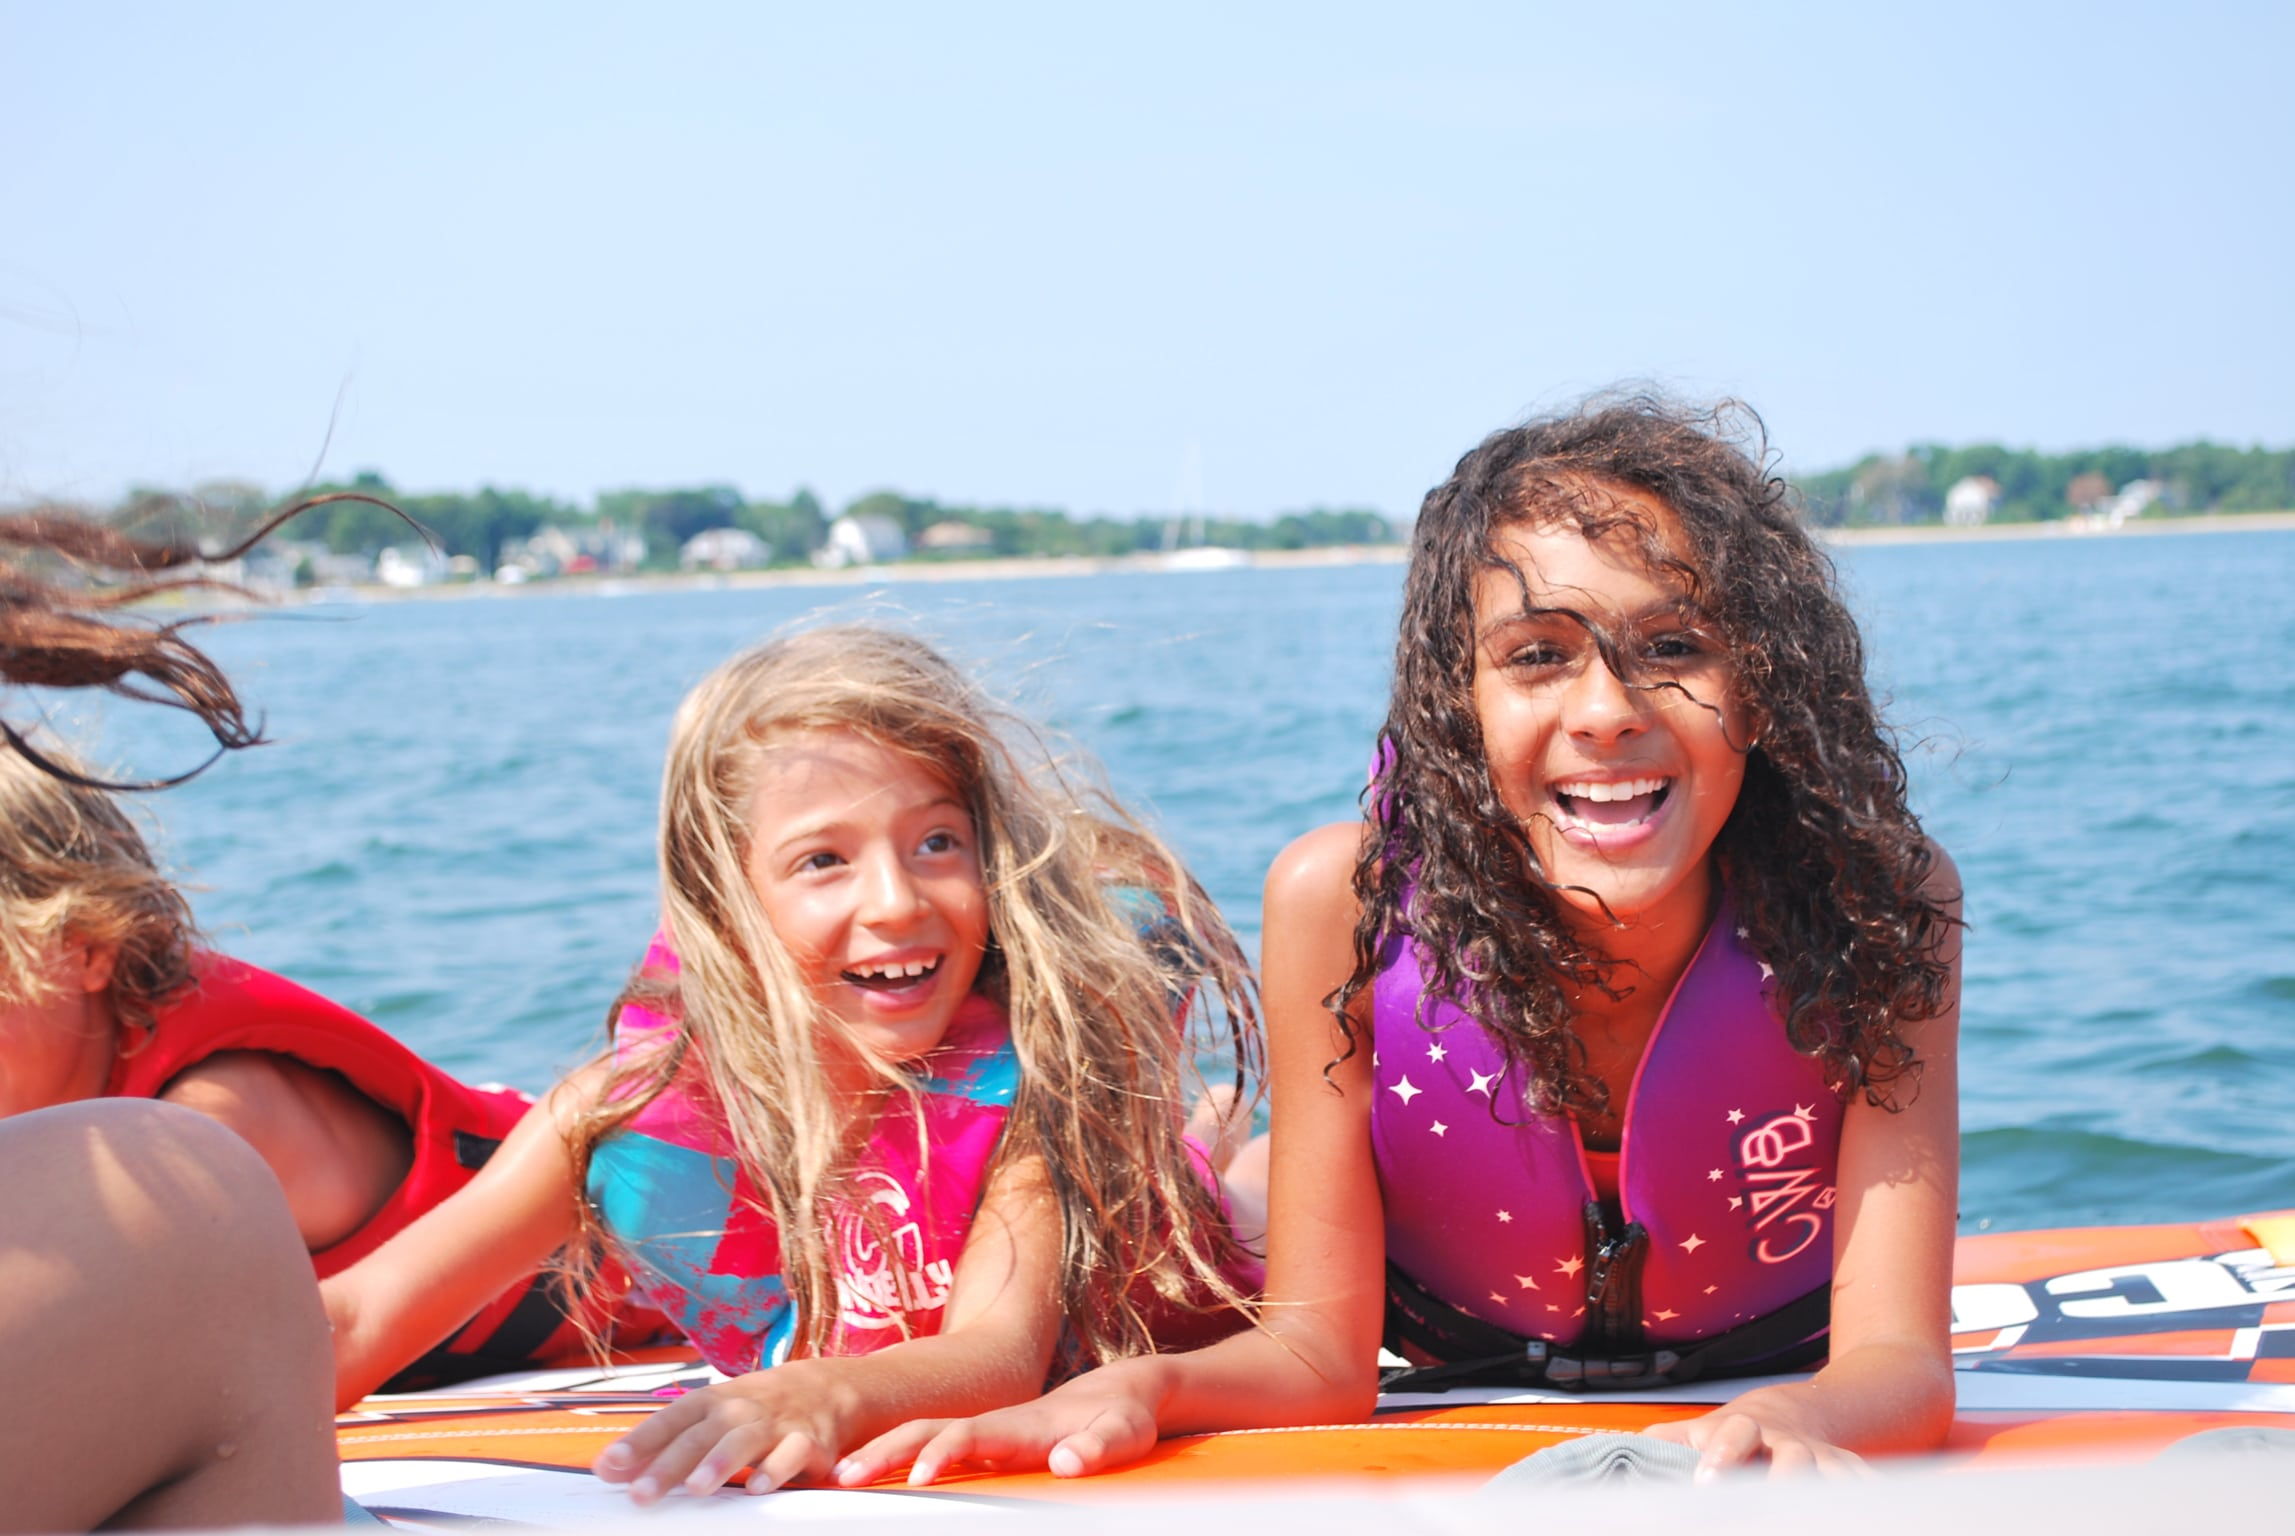 Peconic Water Sports Kids Water Sports Camp in the Hamptons near Sag Harbor, NY